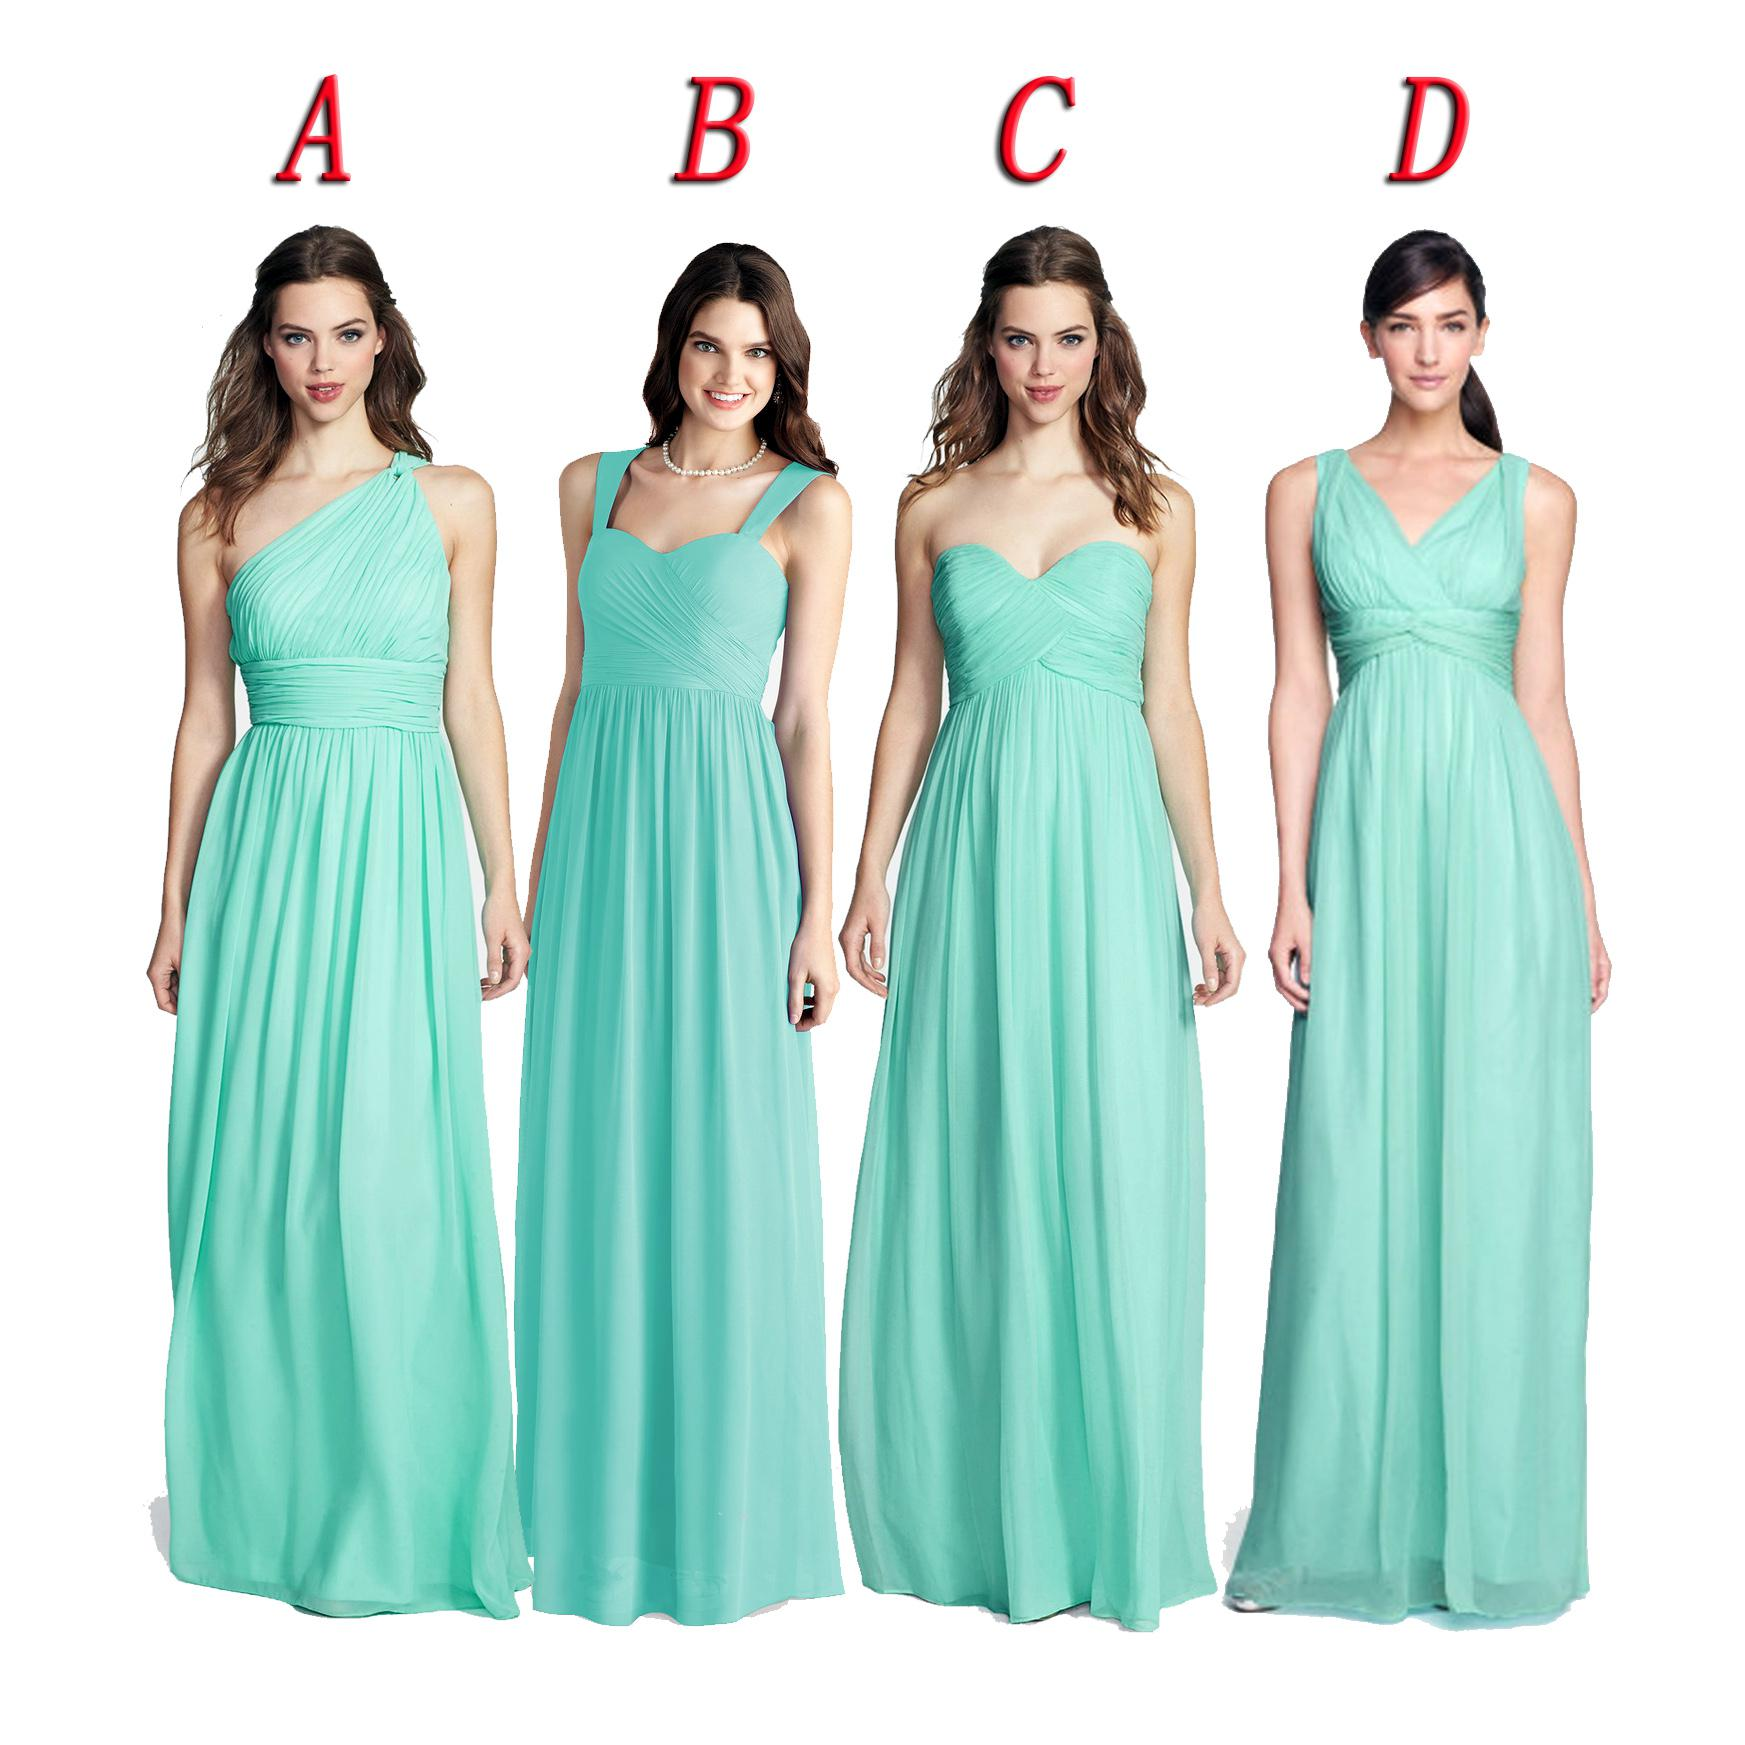 Spearmint color bridesmaid dresses